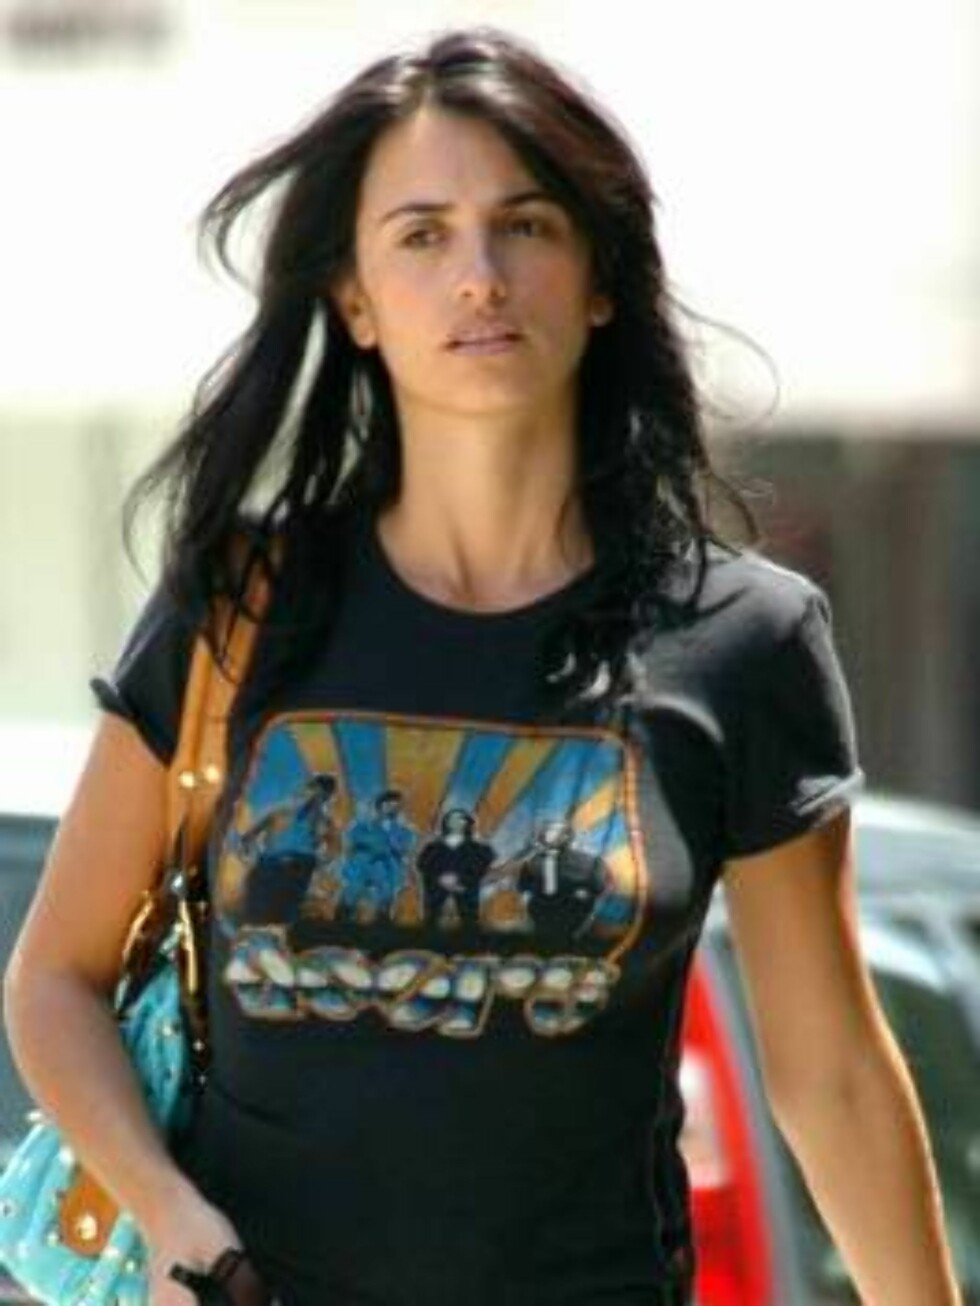 """<strong>Code:</strong> X17XX8 - Bustillos, Beverly Hills, USA, 01.05.2005: Penelope Cruz dresses down to do some shopping in Beverly Hills.  The girlfriend of """"Sahara"""" co-star Matthew McConaughey wore a Doors concert t-shirt and flip flops and entered through the back doo Foto: All Over Press"""